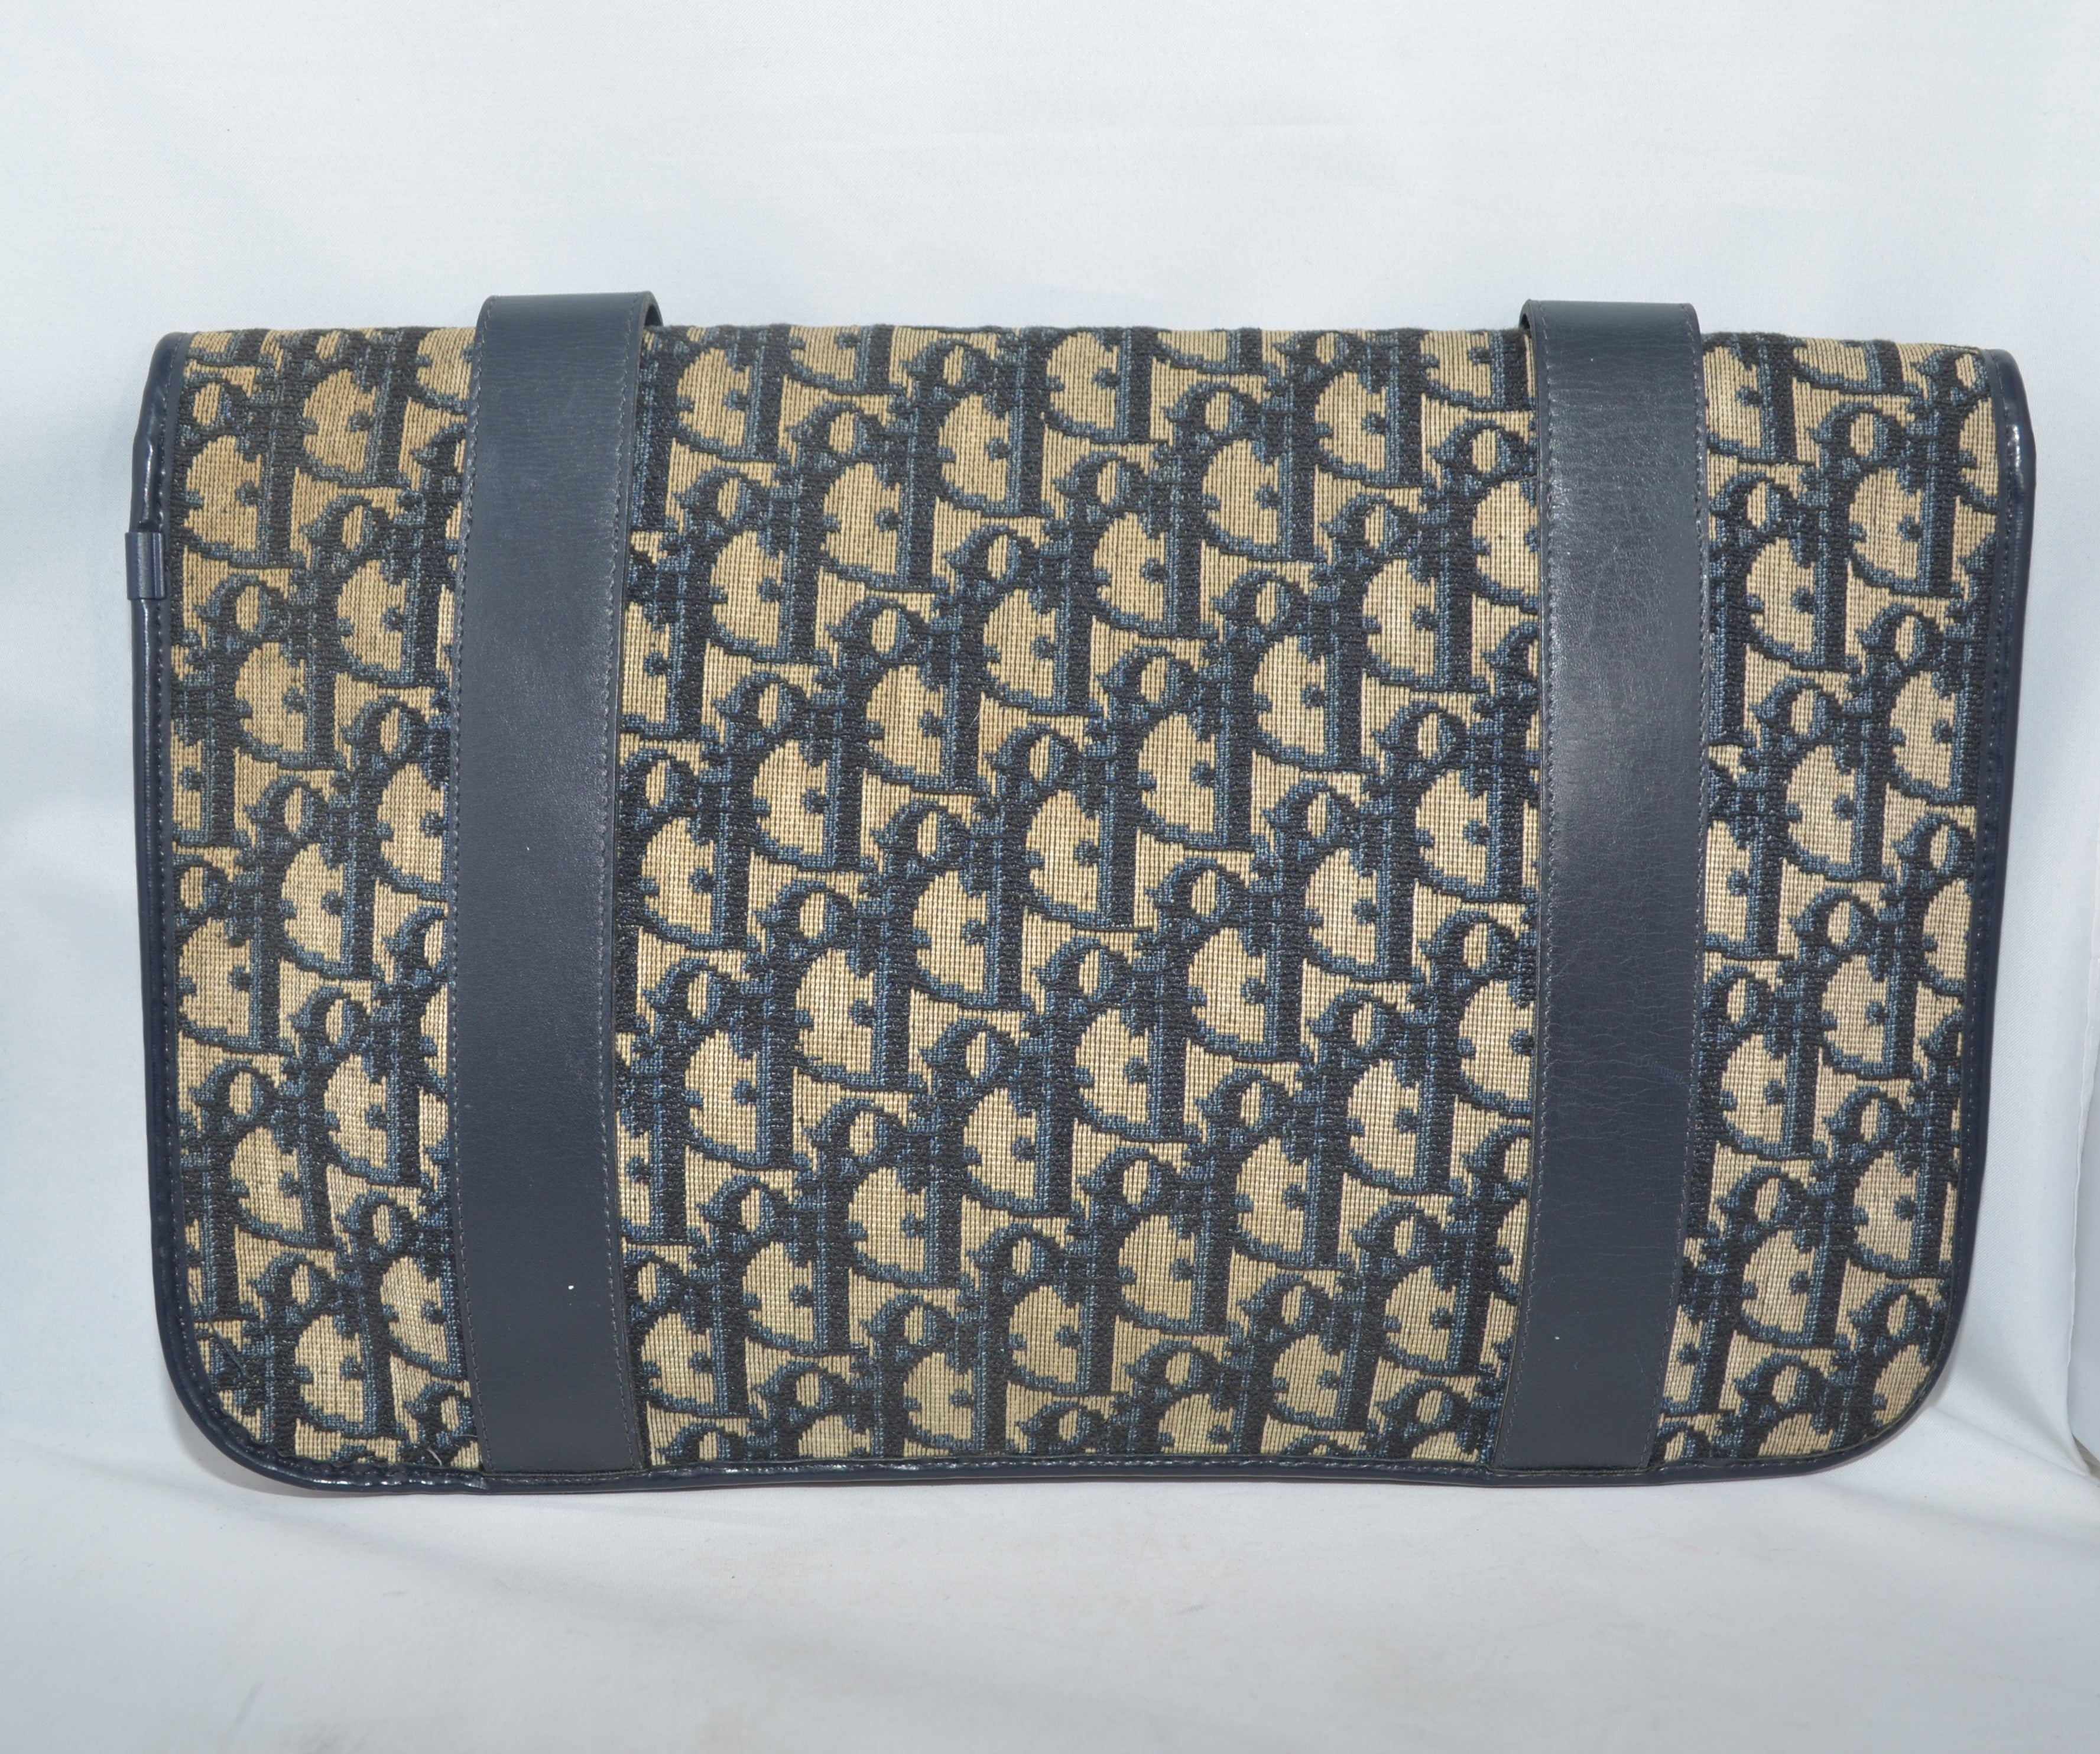 1976e43e4f Christian Dior Vintage Canvas Clutch at 1stdibs